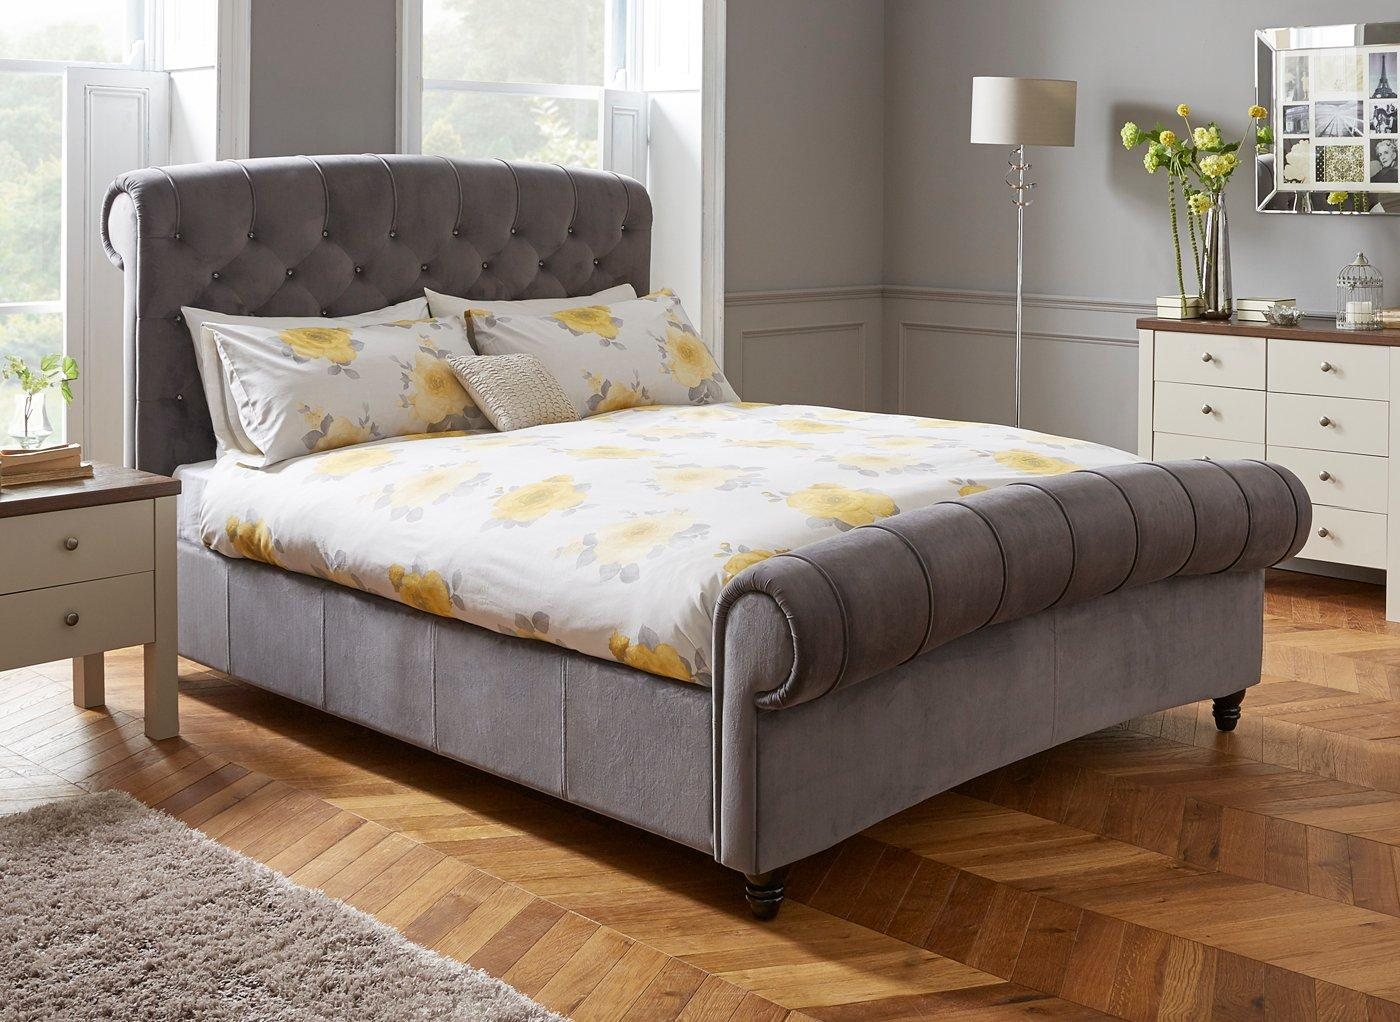 Dreams Mattress Guarantee Ellis Upholstered Bed All Beds Beds Dreams